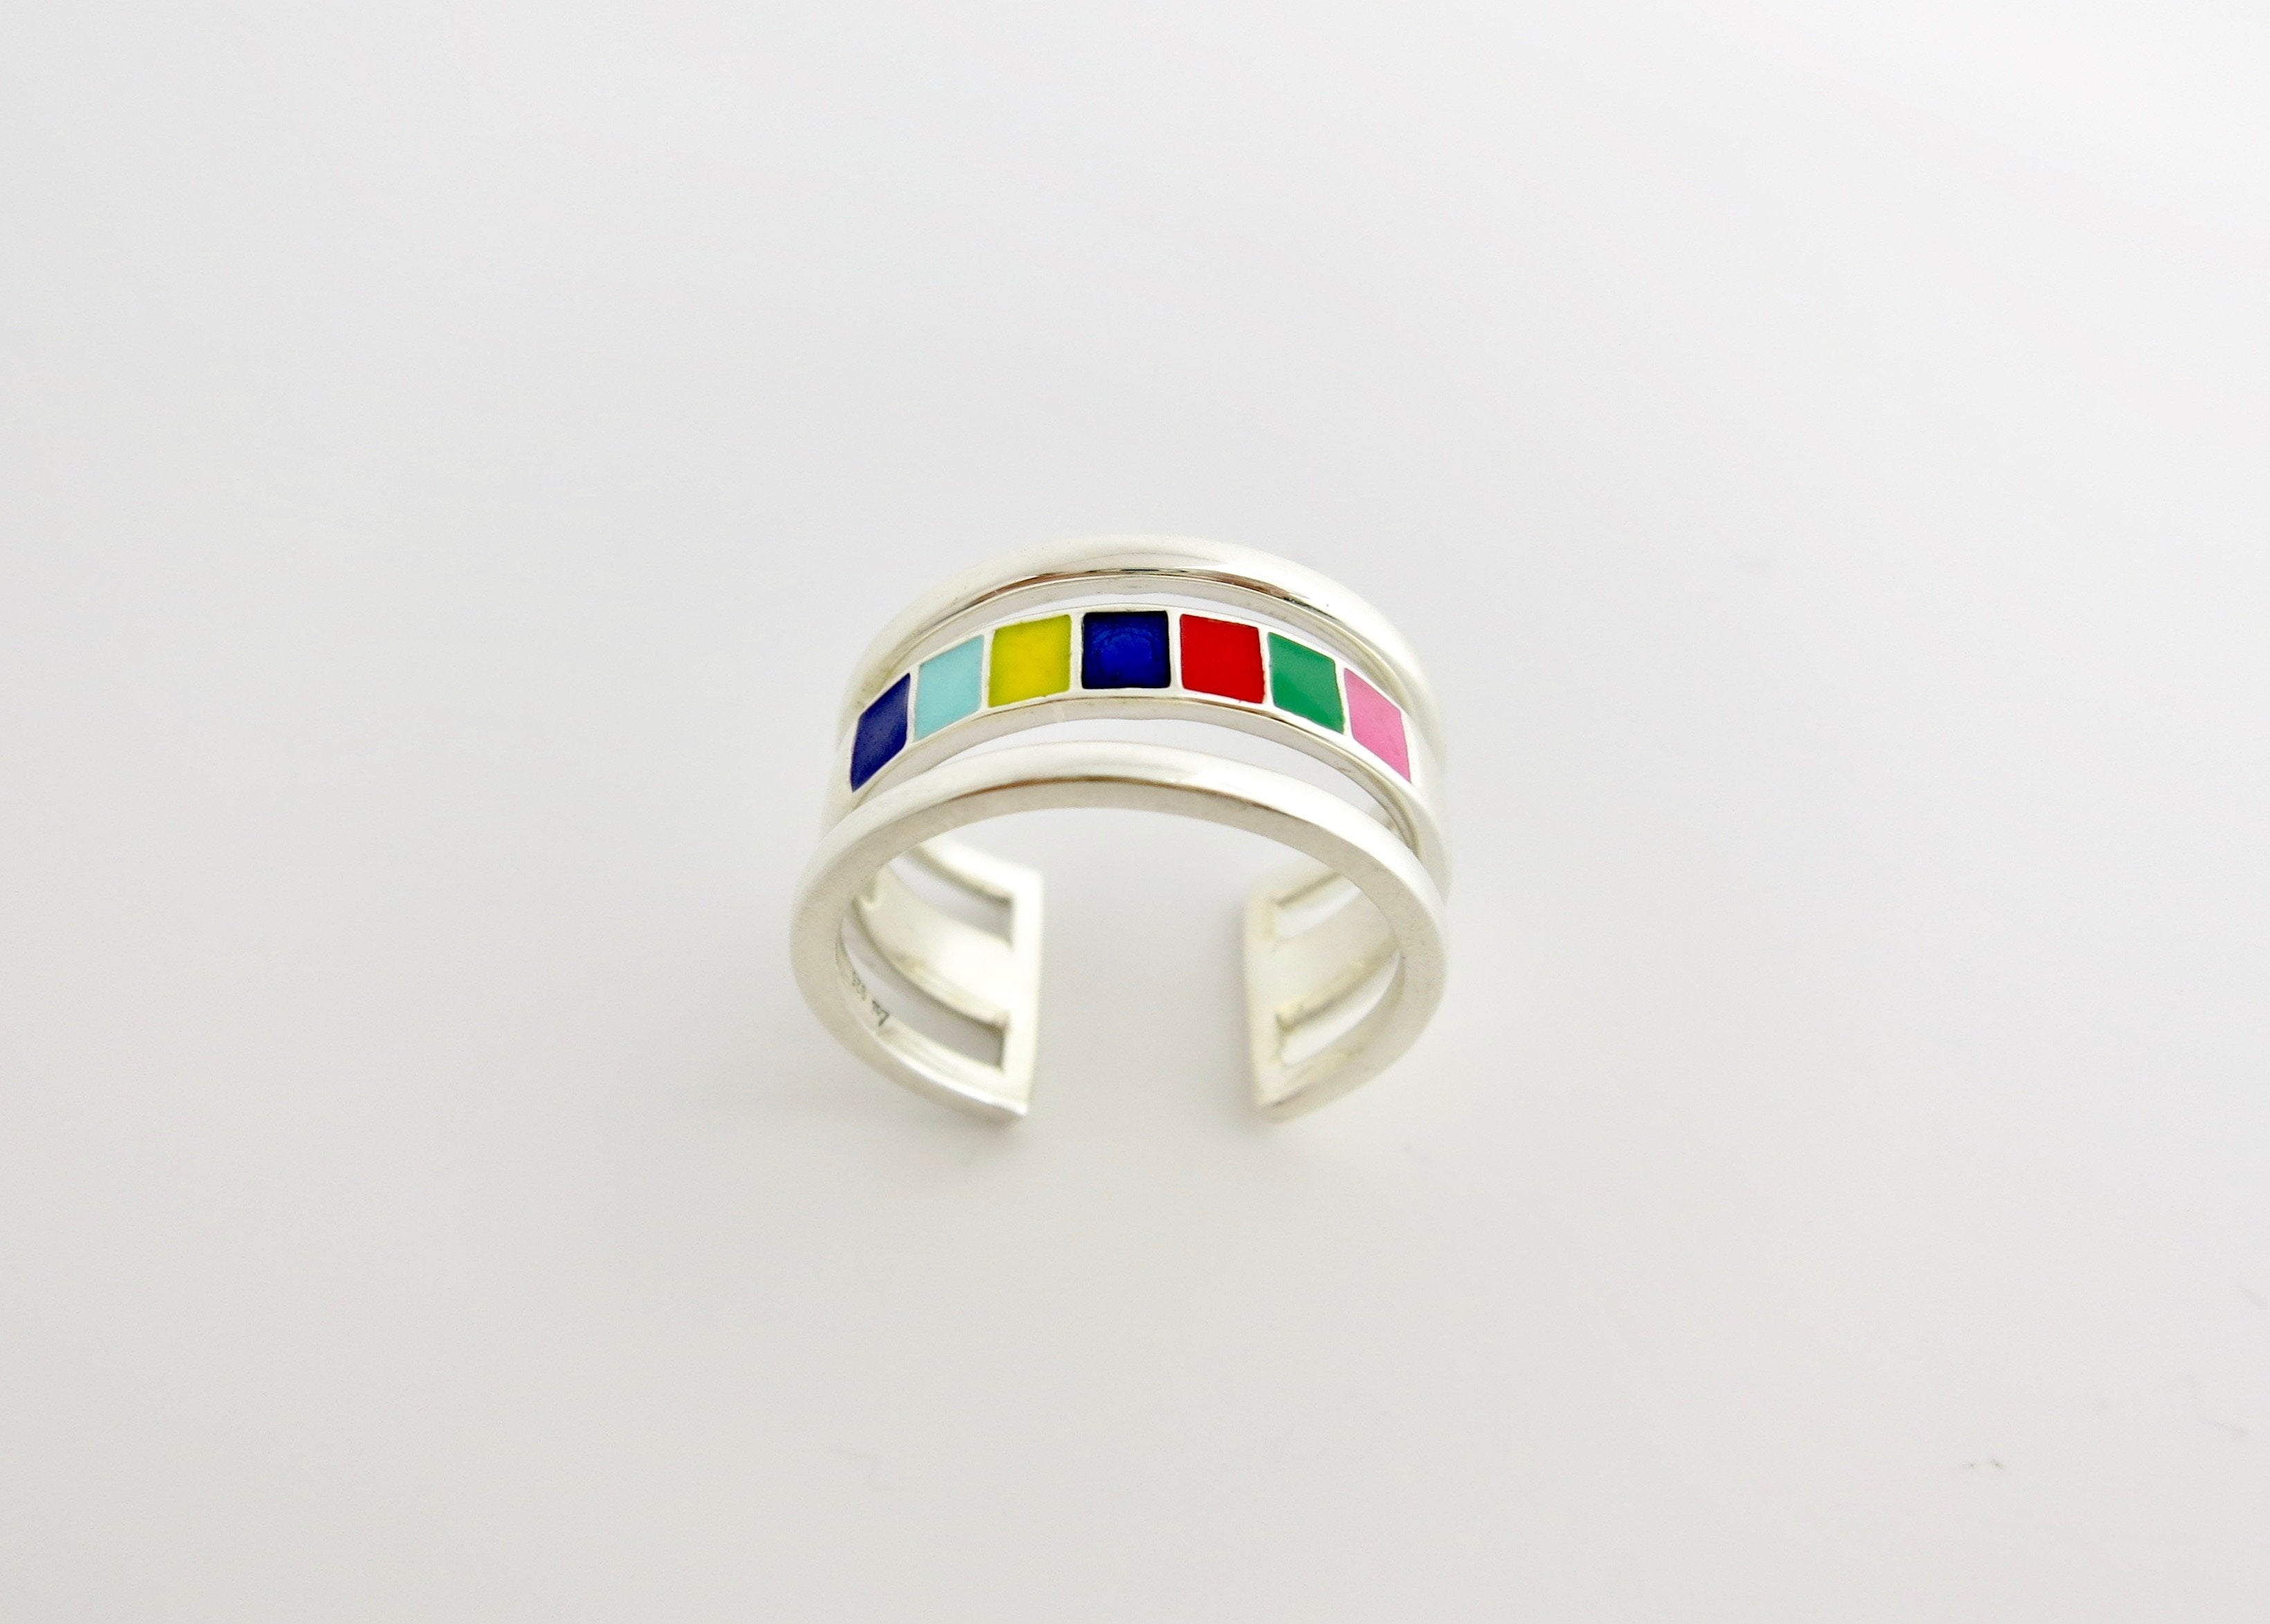 Won't-take-it-off, 'indradhanush' (rainbow) band ring - Craft Stories